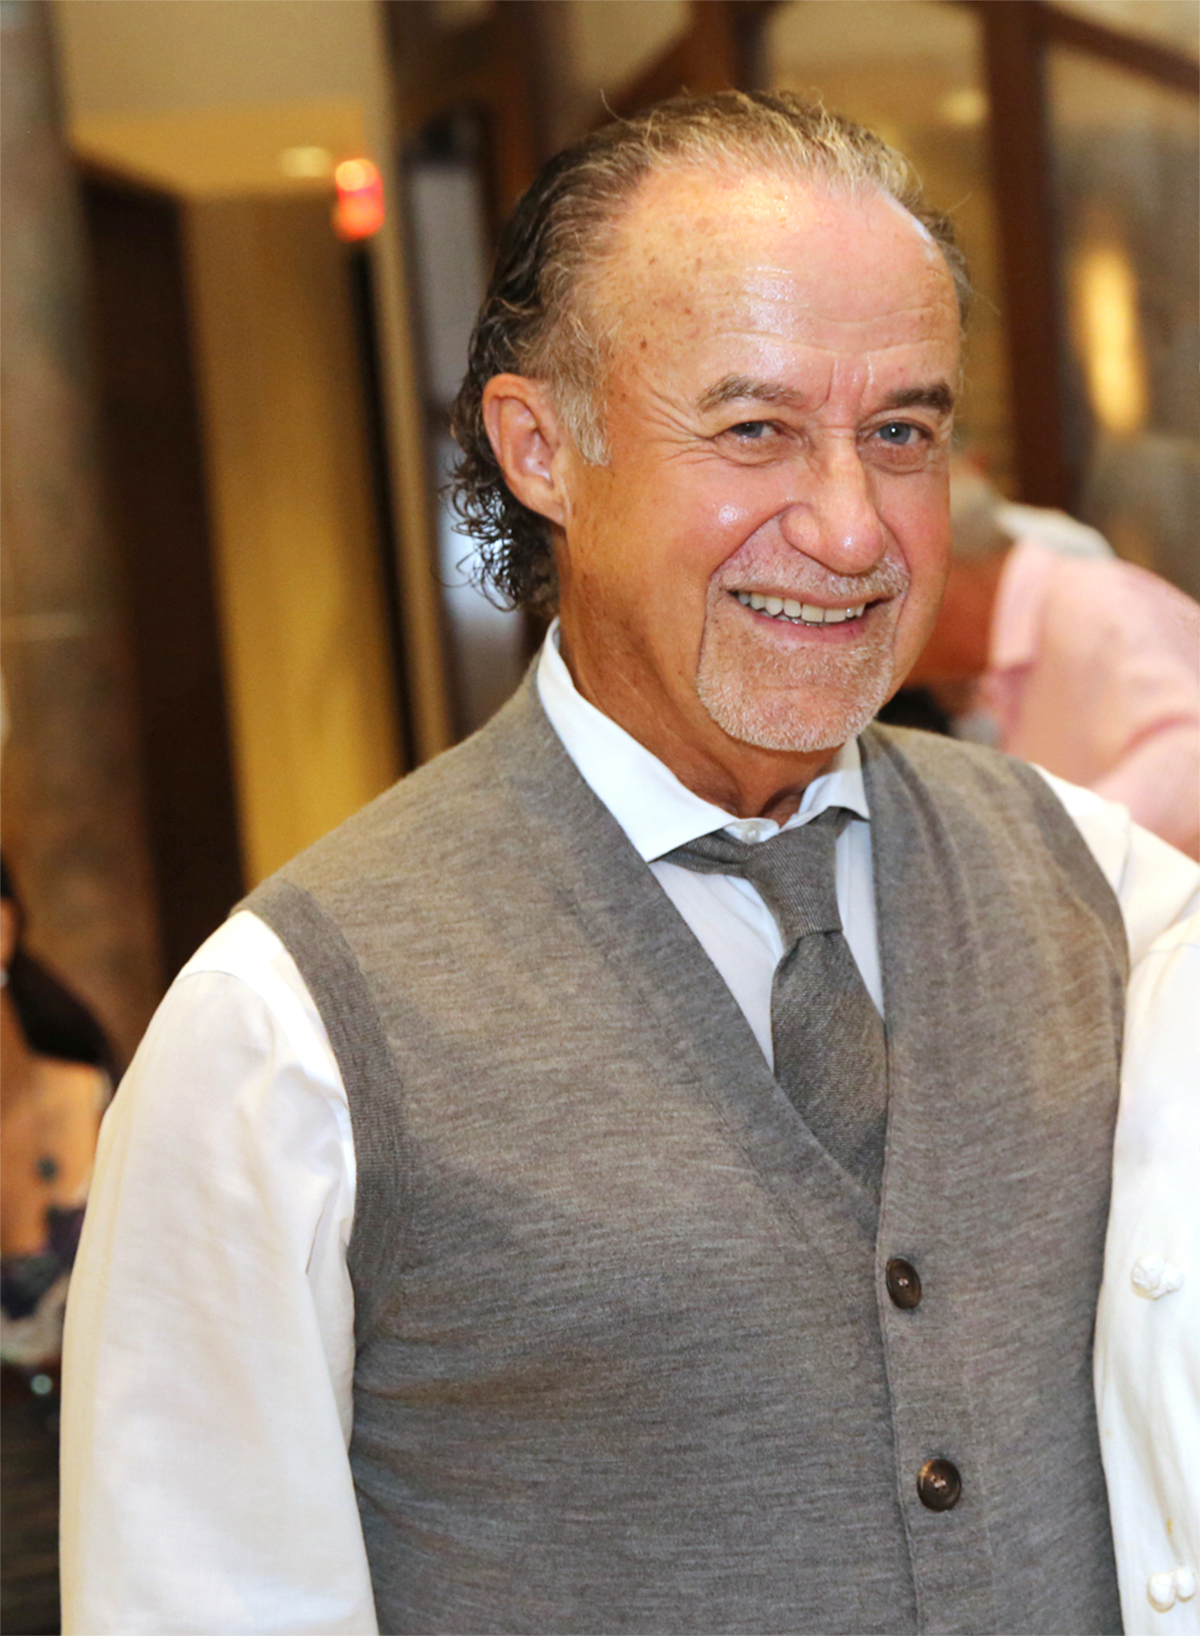 "Major donation for FIU Badia Spices, led by Jose ""Pepe"" Badia, gave $1 million for the Next Horizon campaign at Florida International University to create the Badia Spices Scholarship Endowment at the Chaplin School of Hospitality & Tourism Management. The endowment will be used to recruit and retain students, primarily by providing scholarships for students."